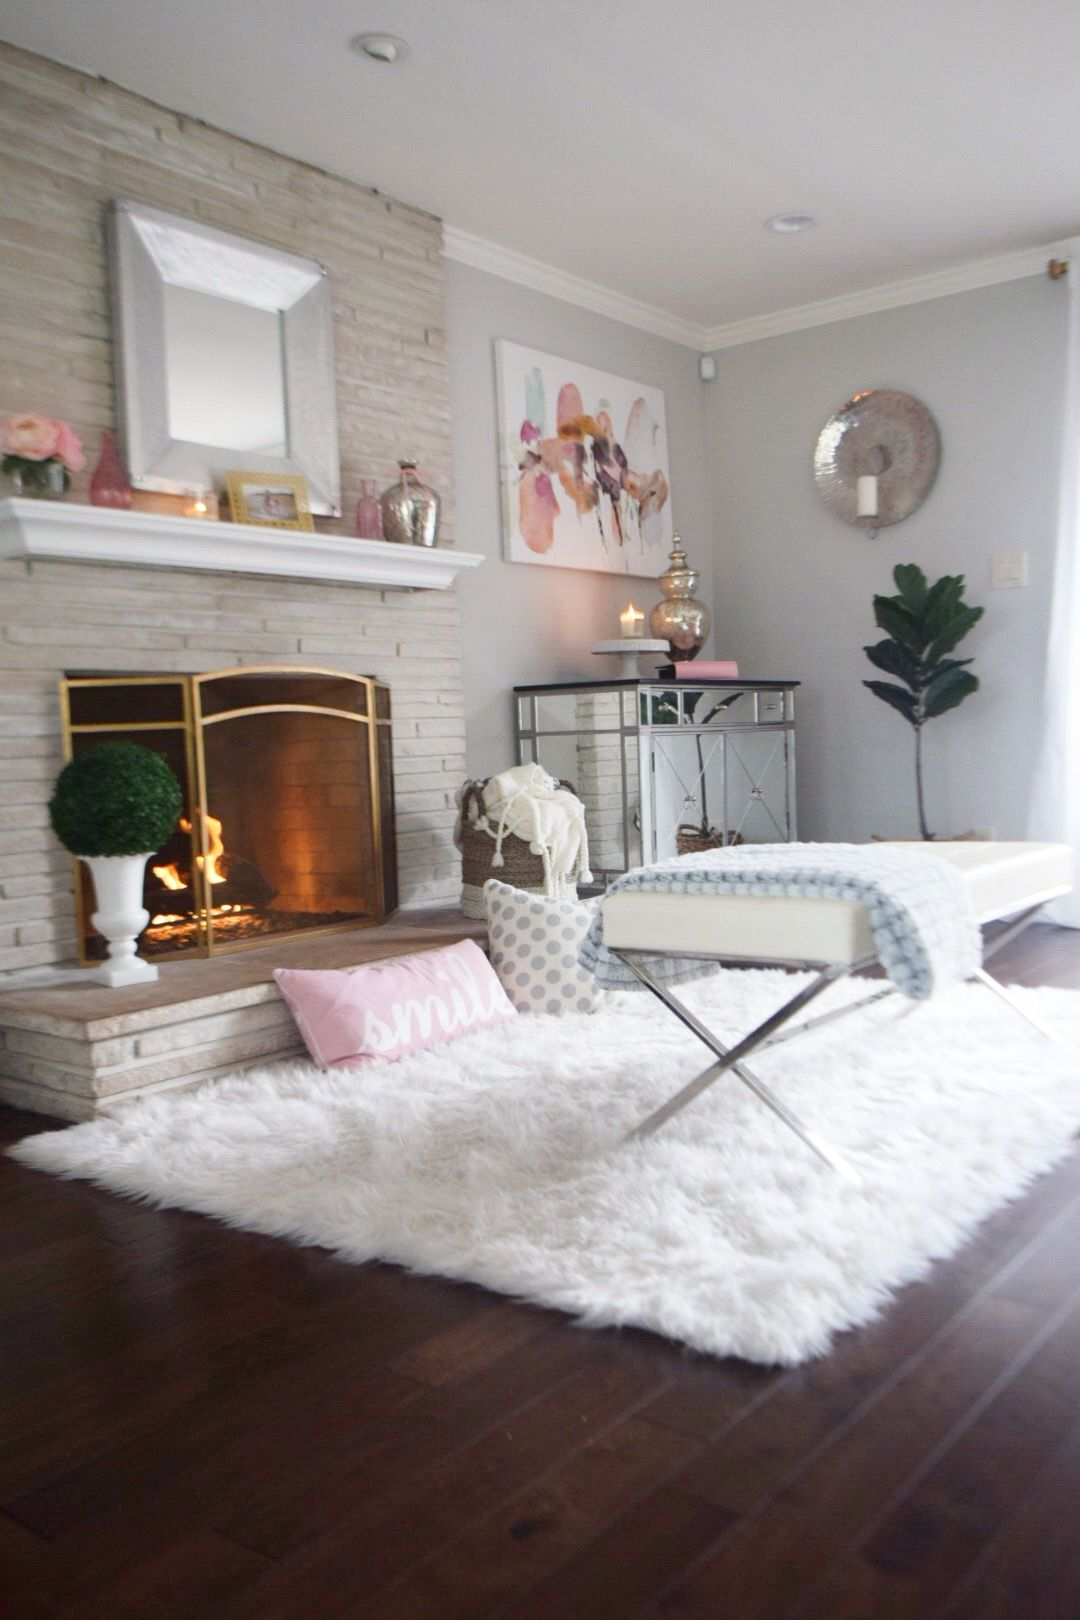 A Faux Fur Rug Cozy Throws And Pillows Make For The Perfect